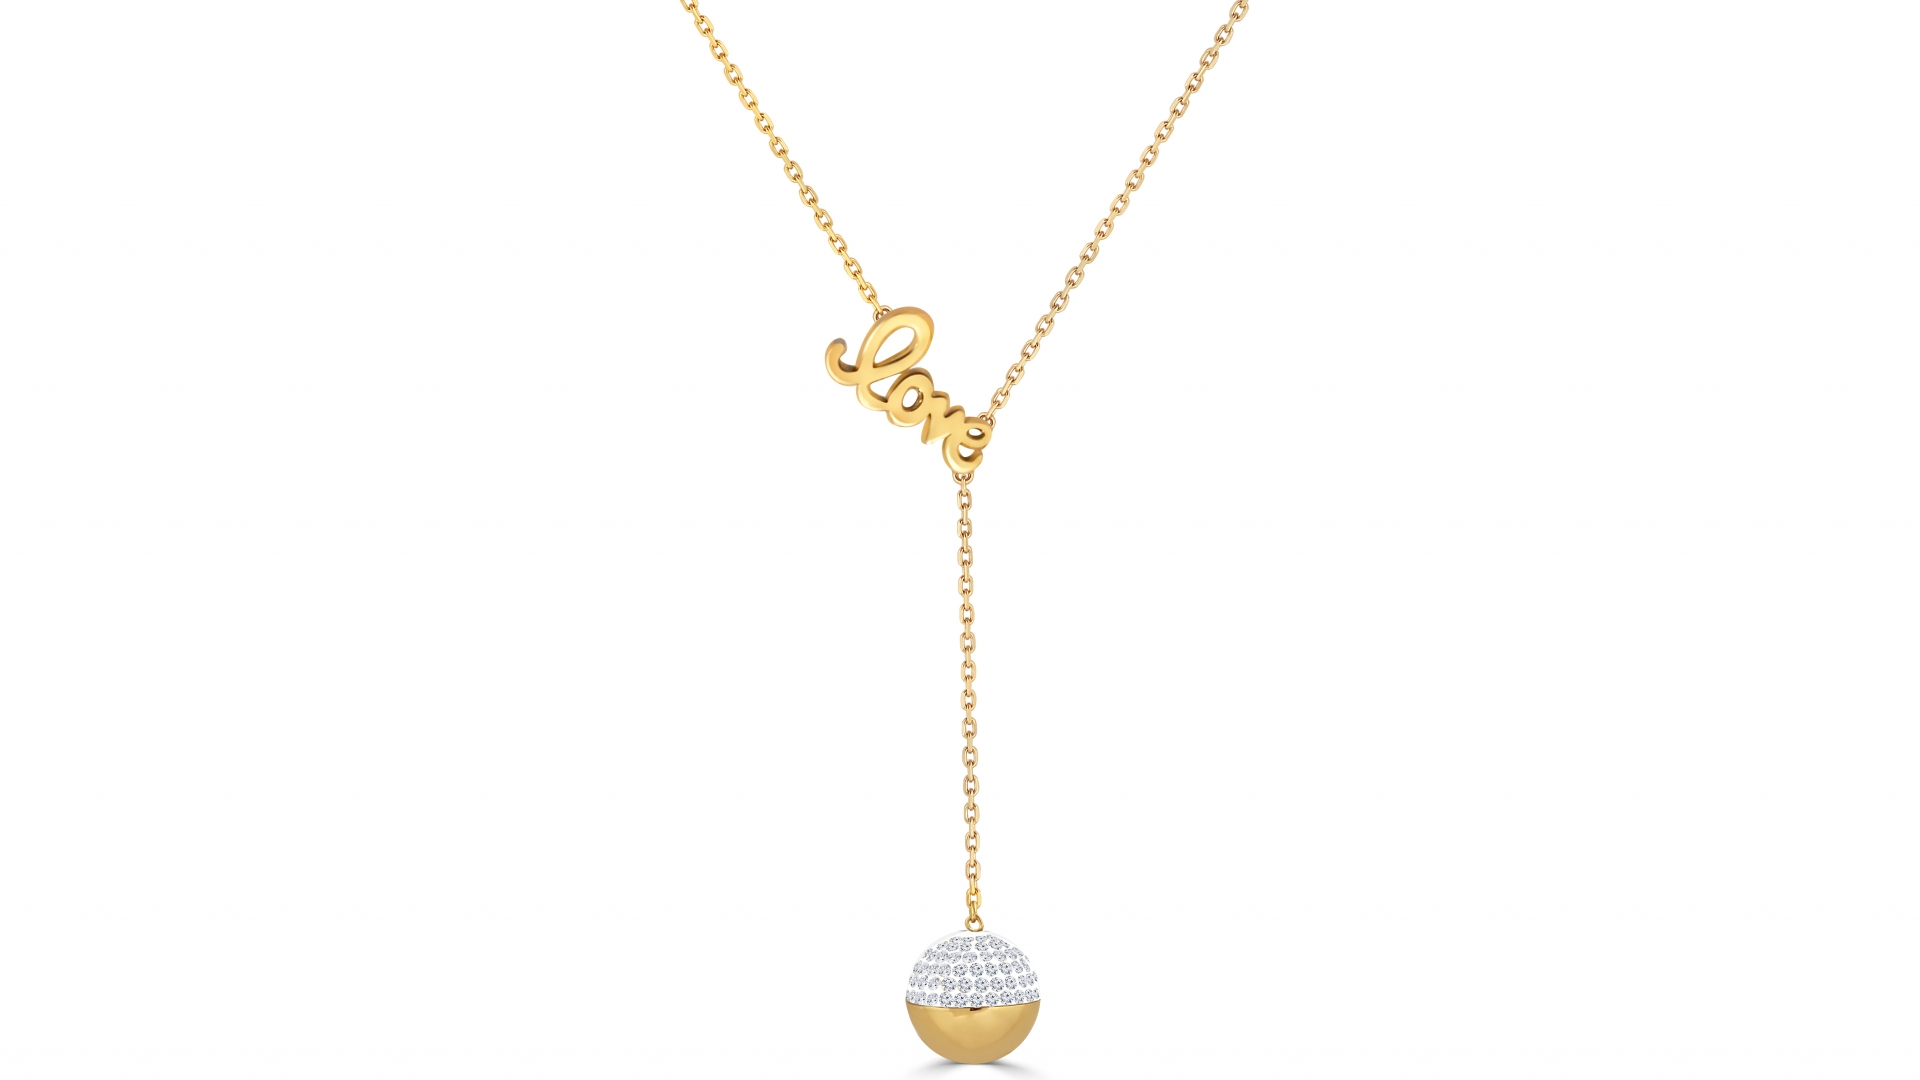 Stylish LOVE Necklace